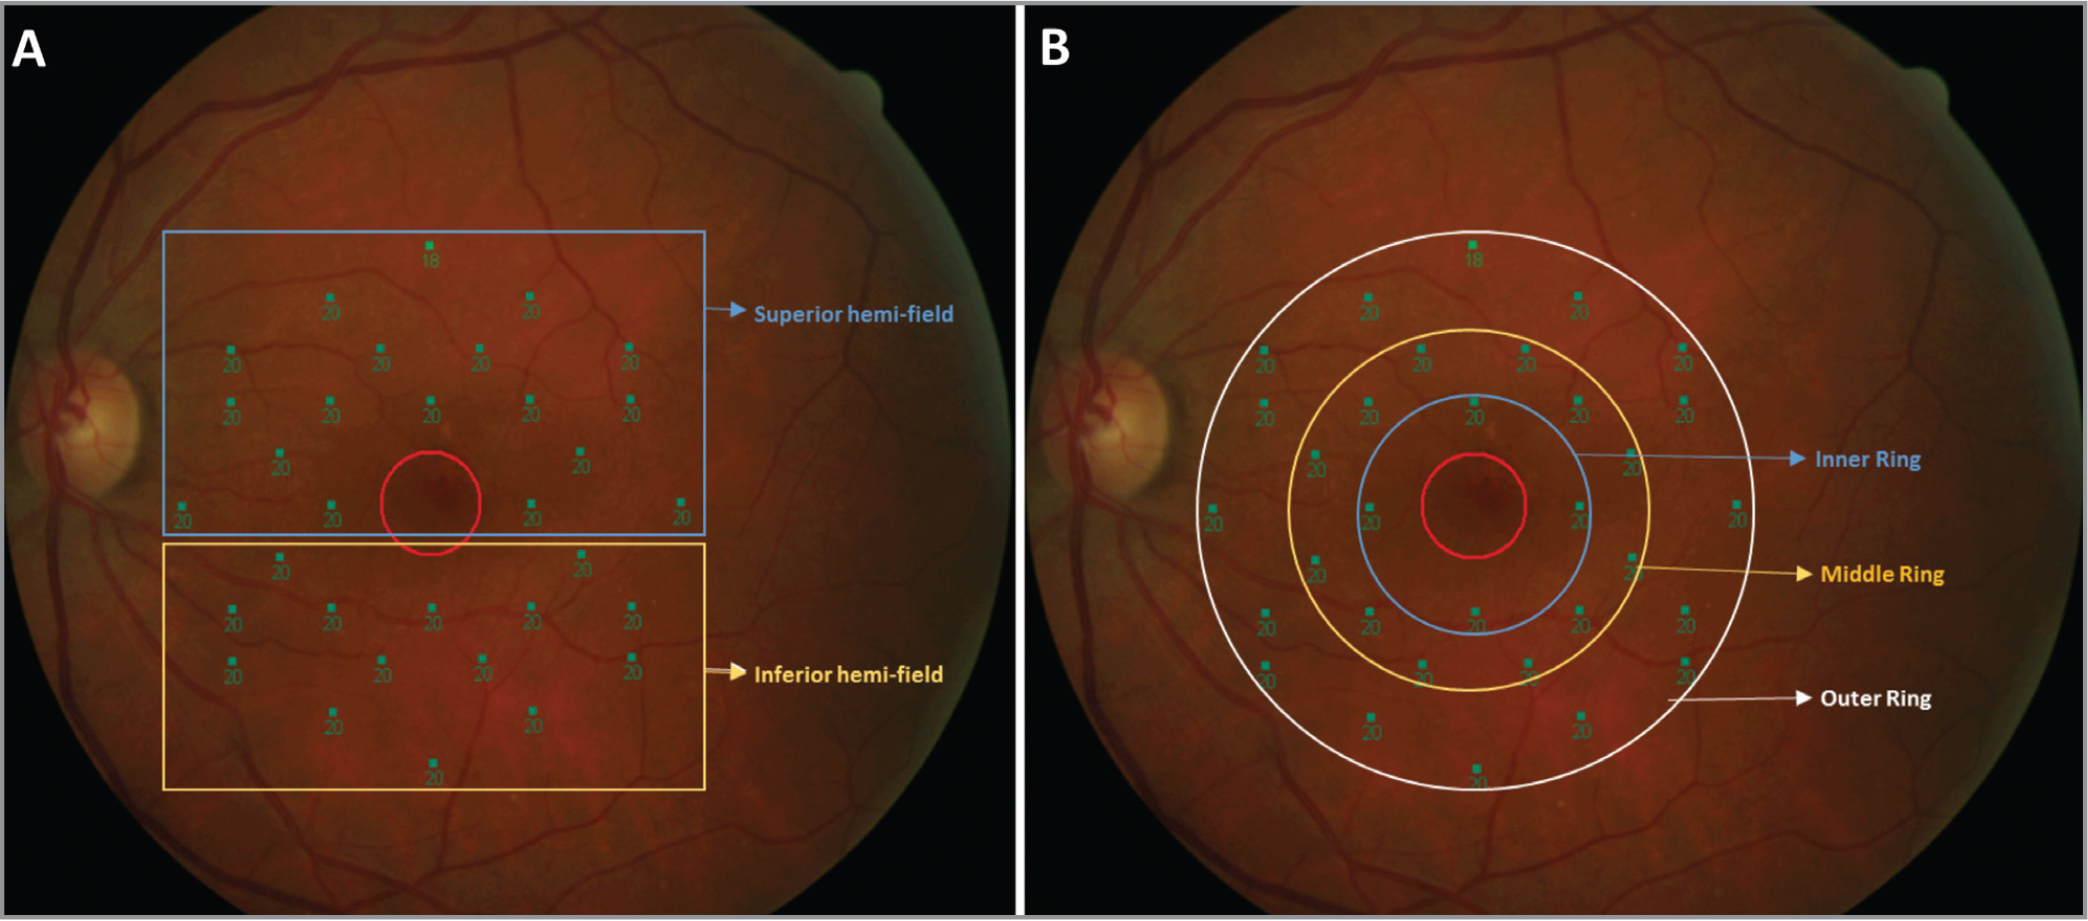 Illustration of hemifield (A) and ring-wise (B) retinal sensitivity measurements.